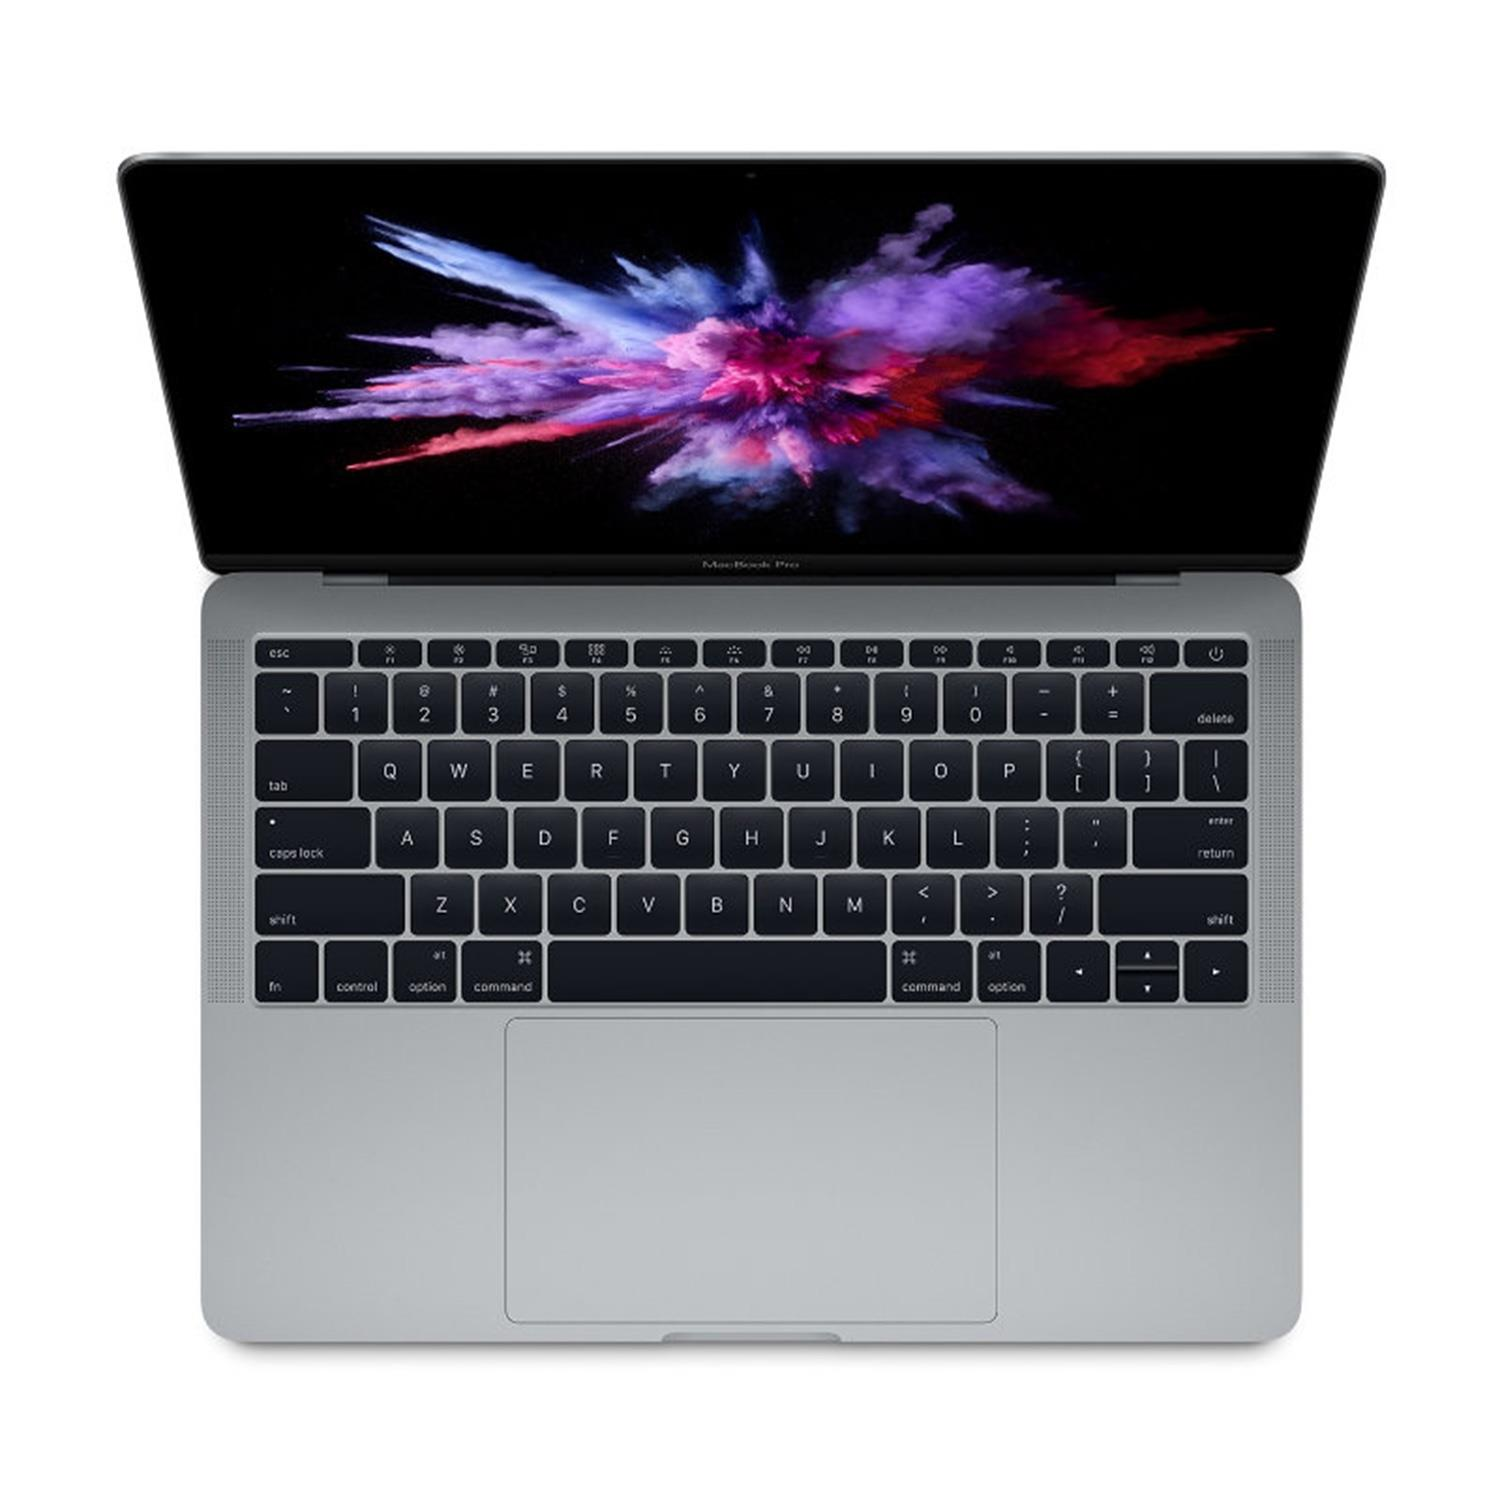 MacBook Pro 13-inch: 2.3GHz dual-core Intel Core i5, 128GB - Silver | Tradeline Egypt Apple